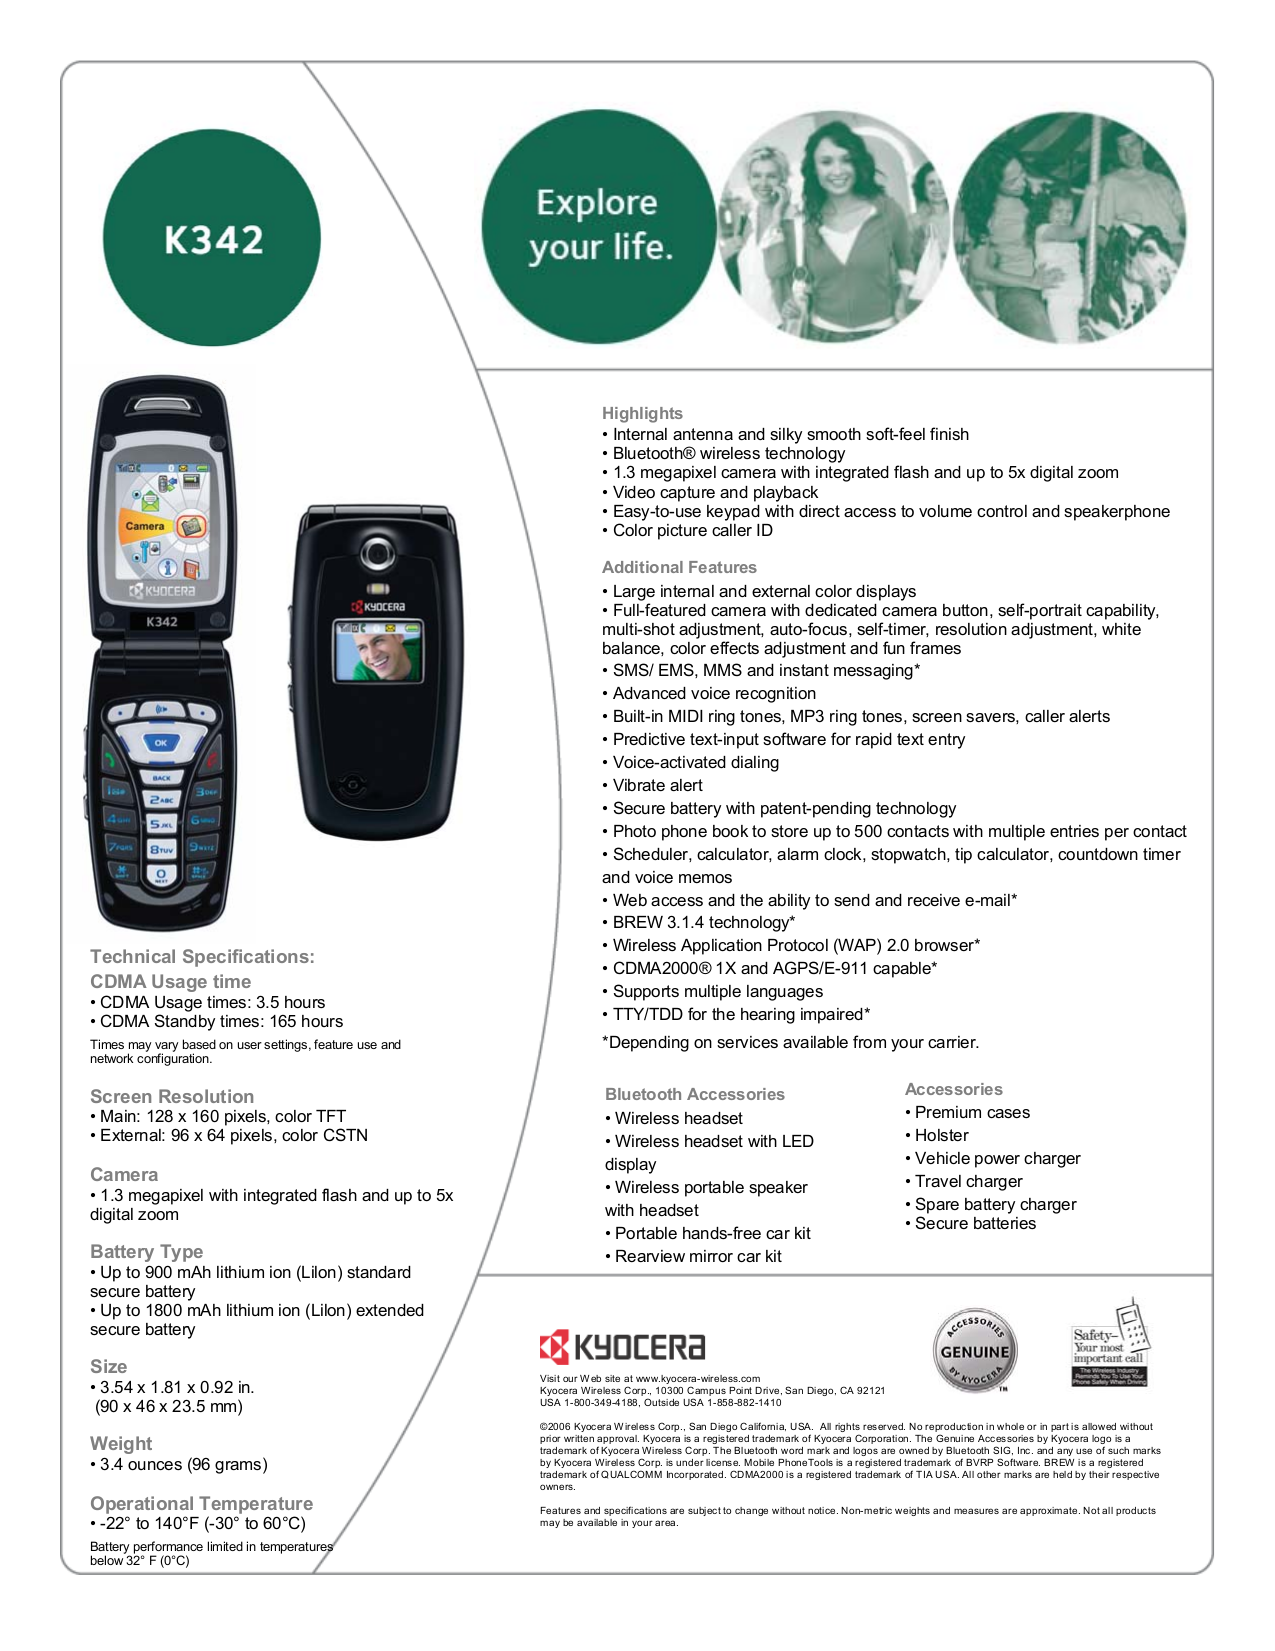 pdf for Kyocera Cell Phone K342 manual